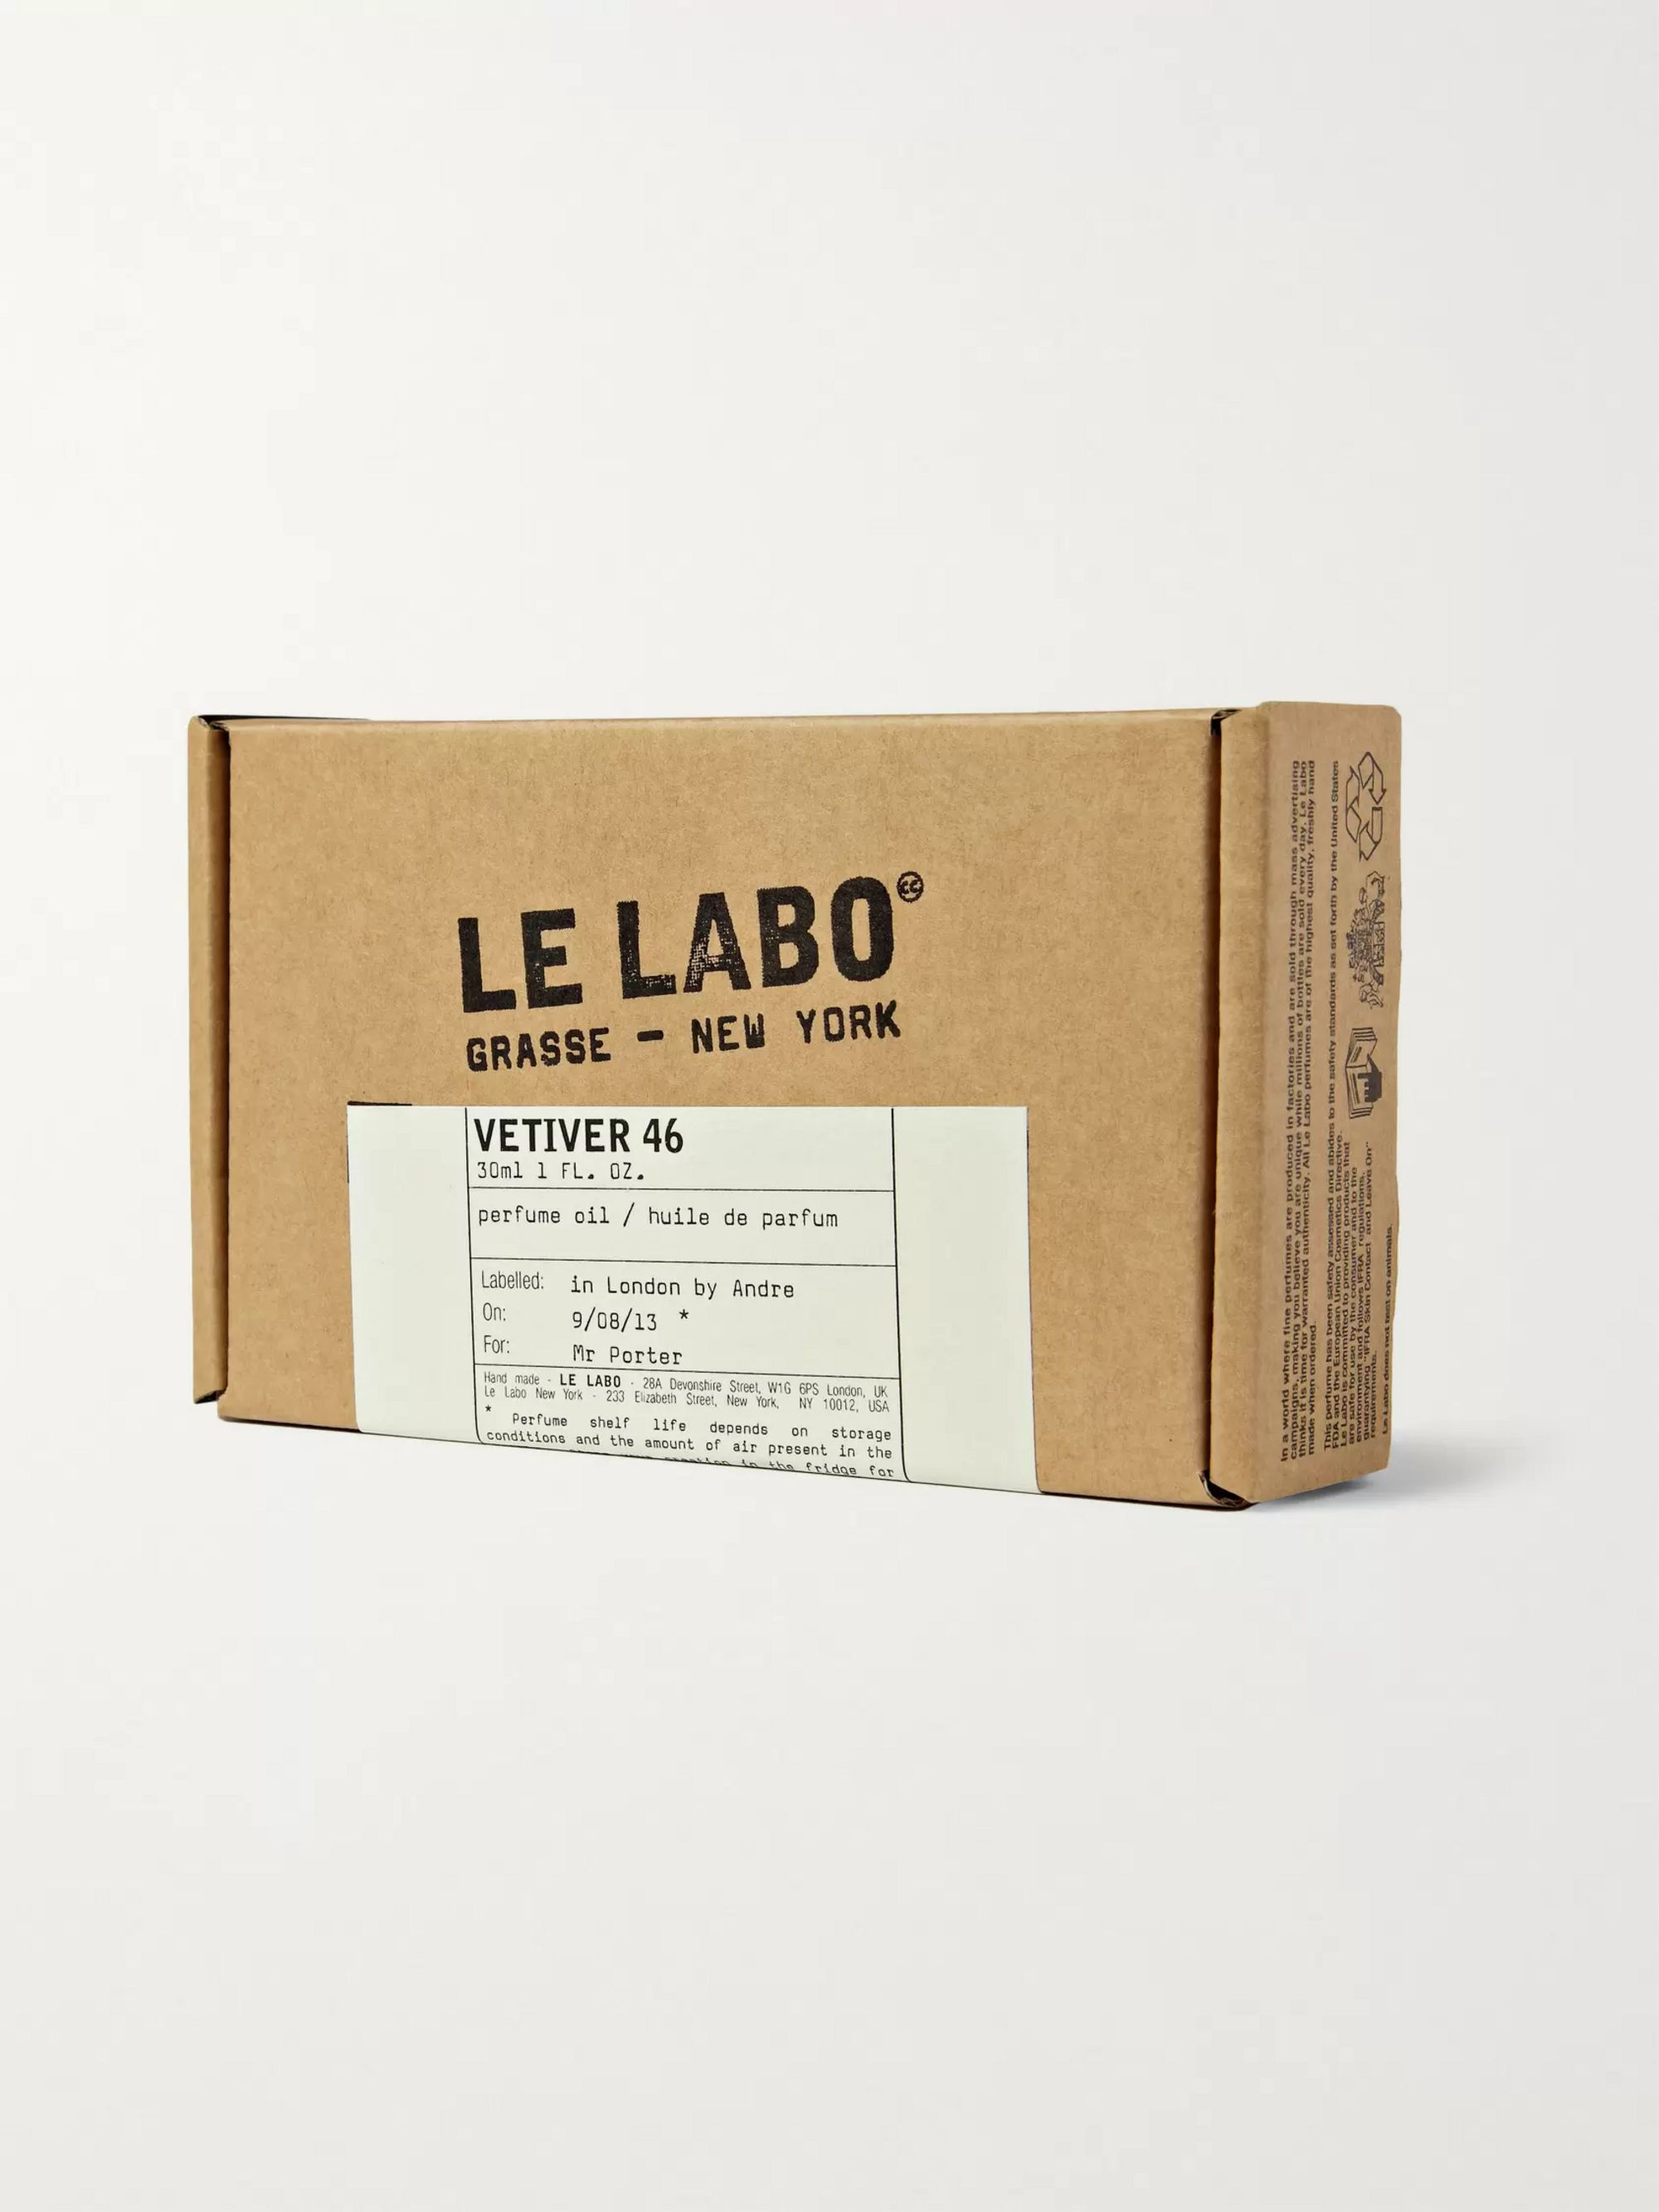 Le Labo Perfume Oil - Vetiver 46, 30ml